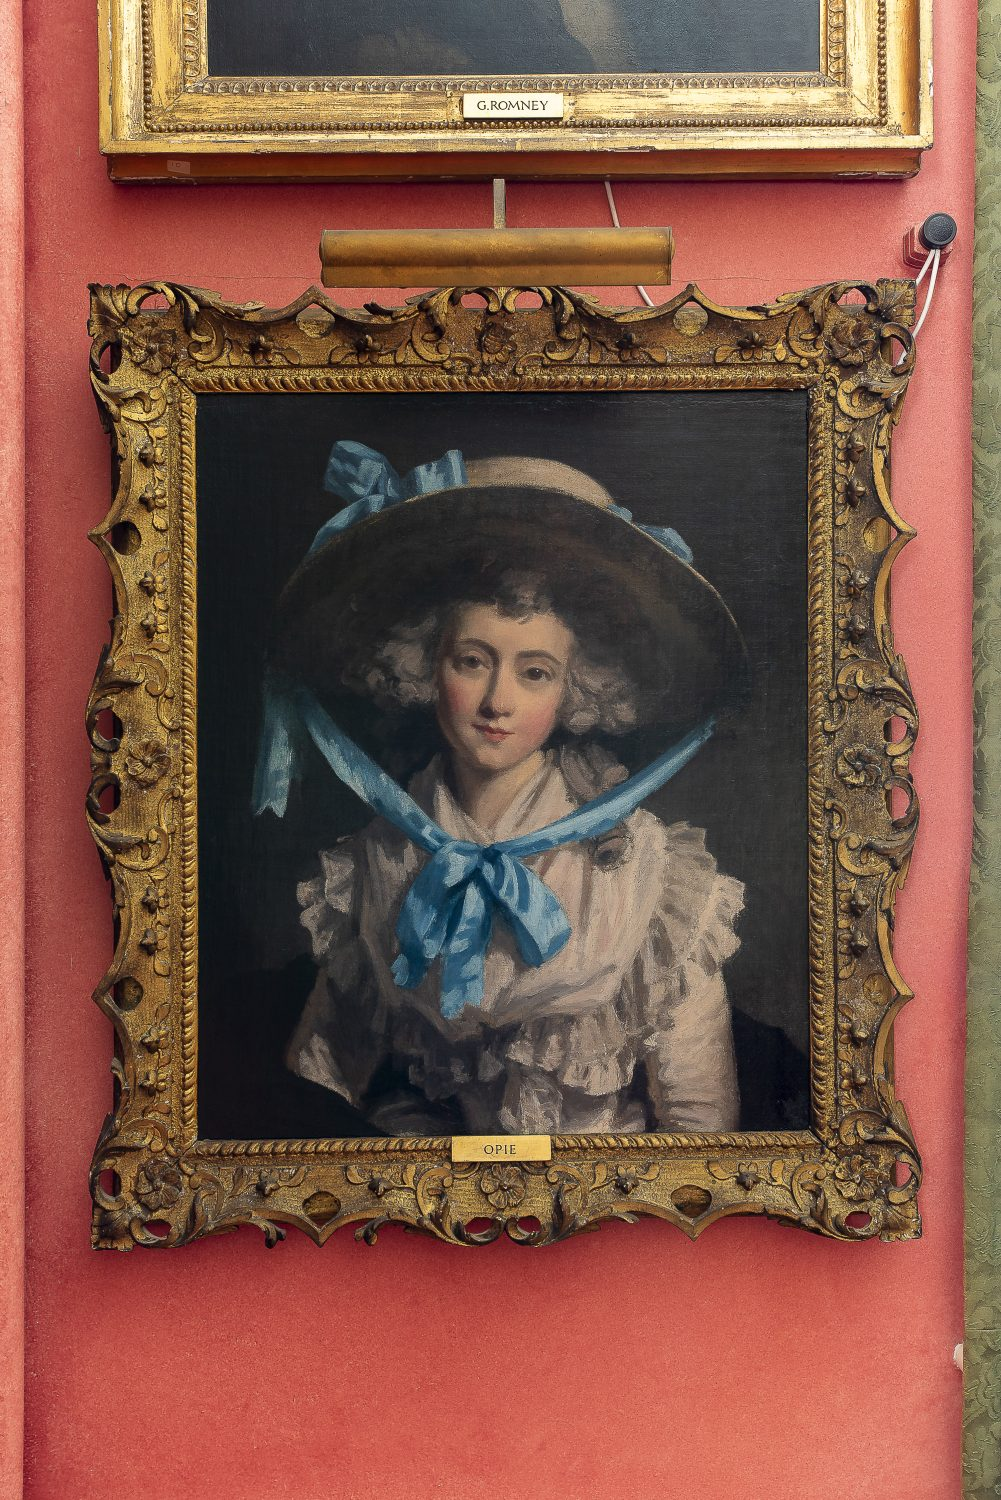 A portrait of Charlotte Warde, mother of The Admiral – 4th generation at Squerryes Court – by John Opie